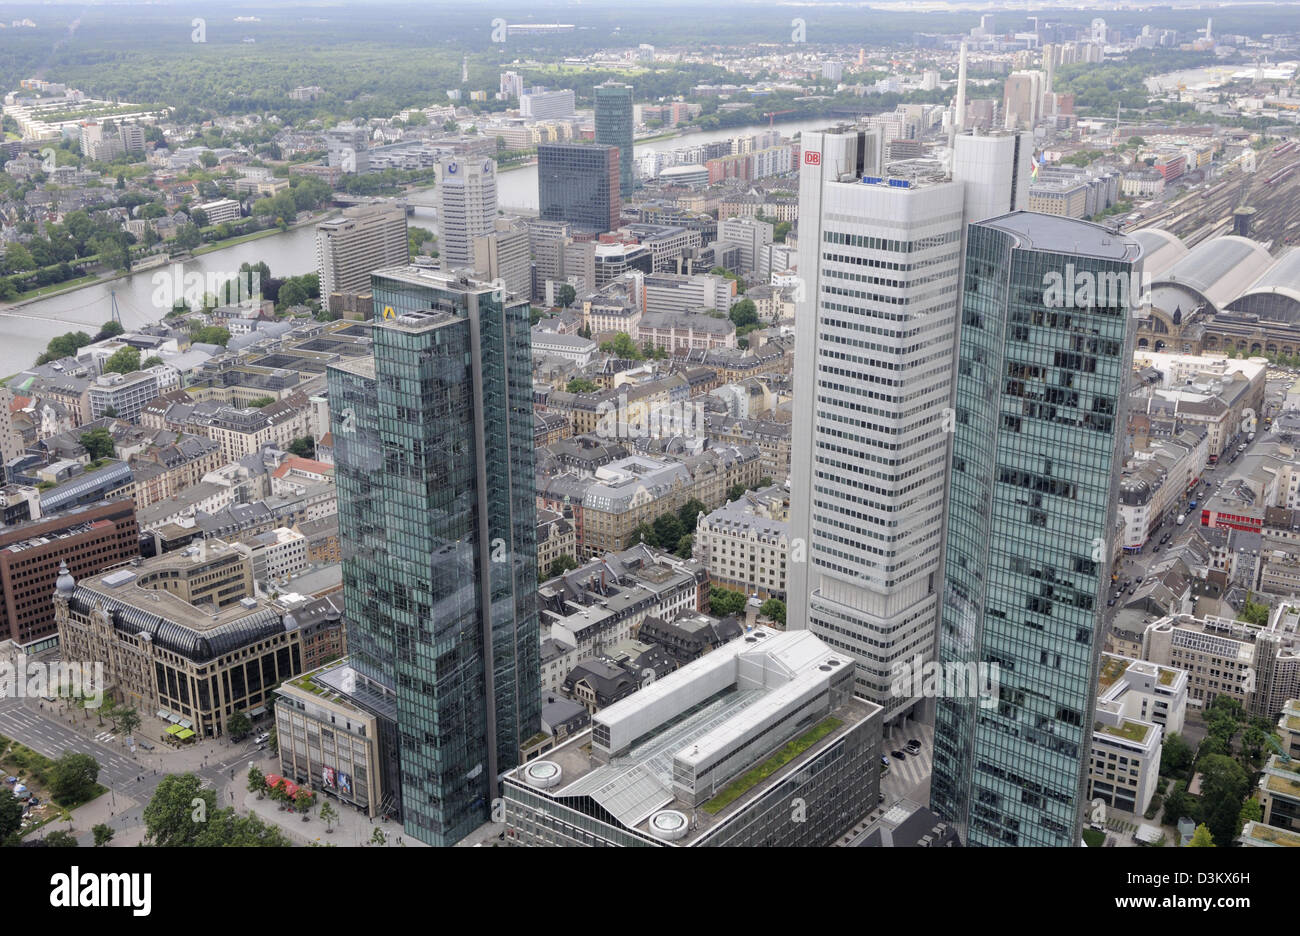 Looking south towards the river Main from the top of the Main Tower, Frankfurt, Germany. Stock Photo